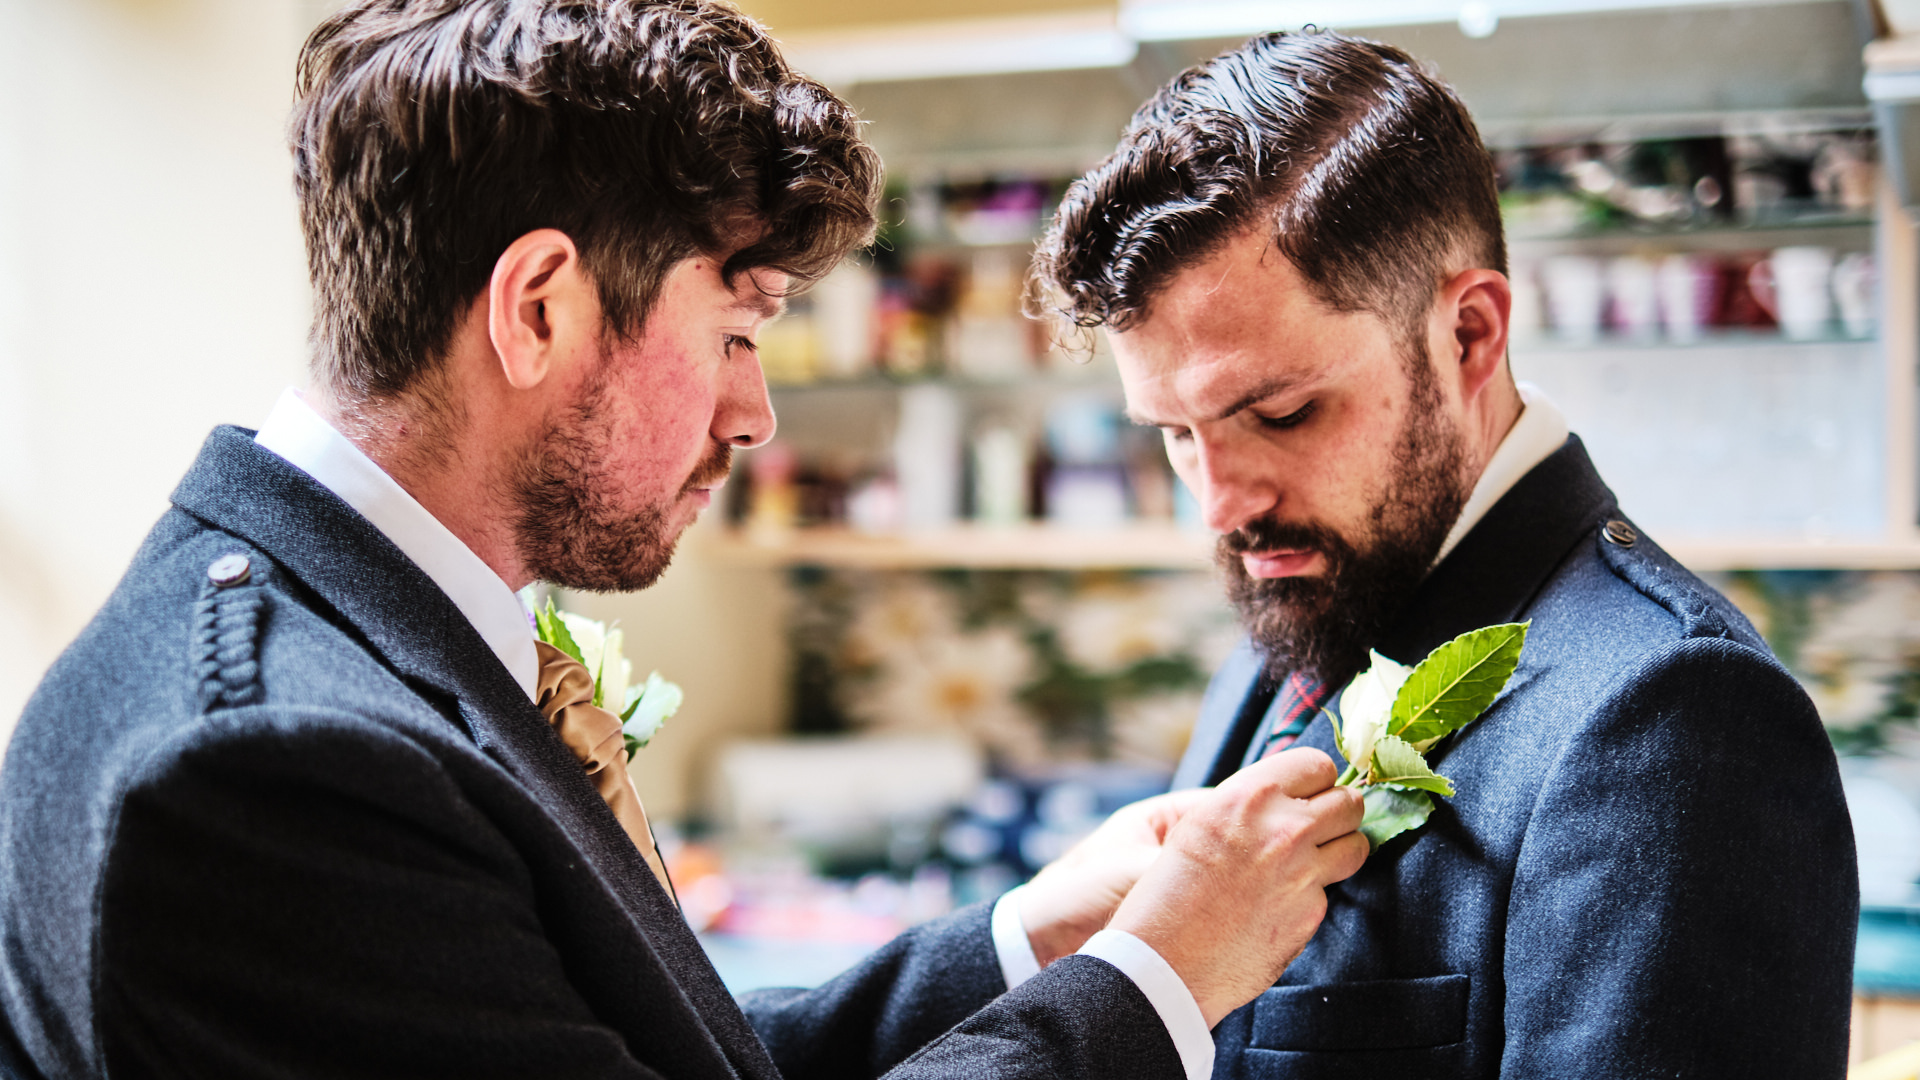 a colour photograph of the batsman putting the bridegroom's button hole flower on before the start of the wedding